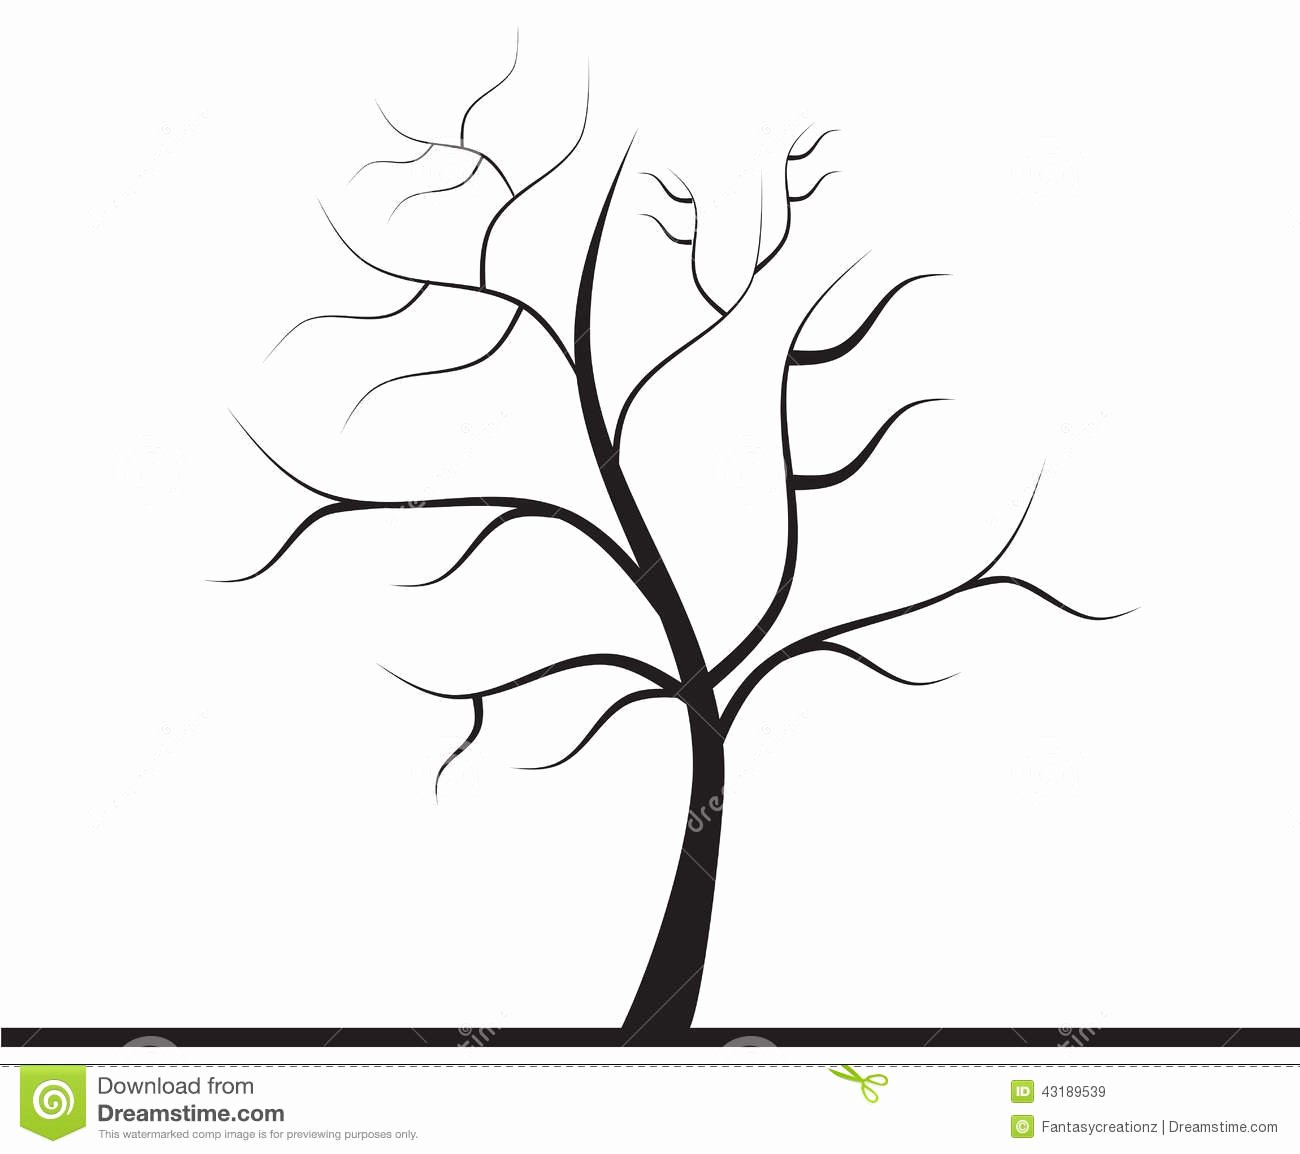 How to Draw A Simple Tree without Leaves Beautiful Tree without Leaves Stock Image Image Of Firm Clipart